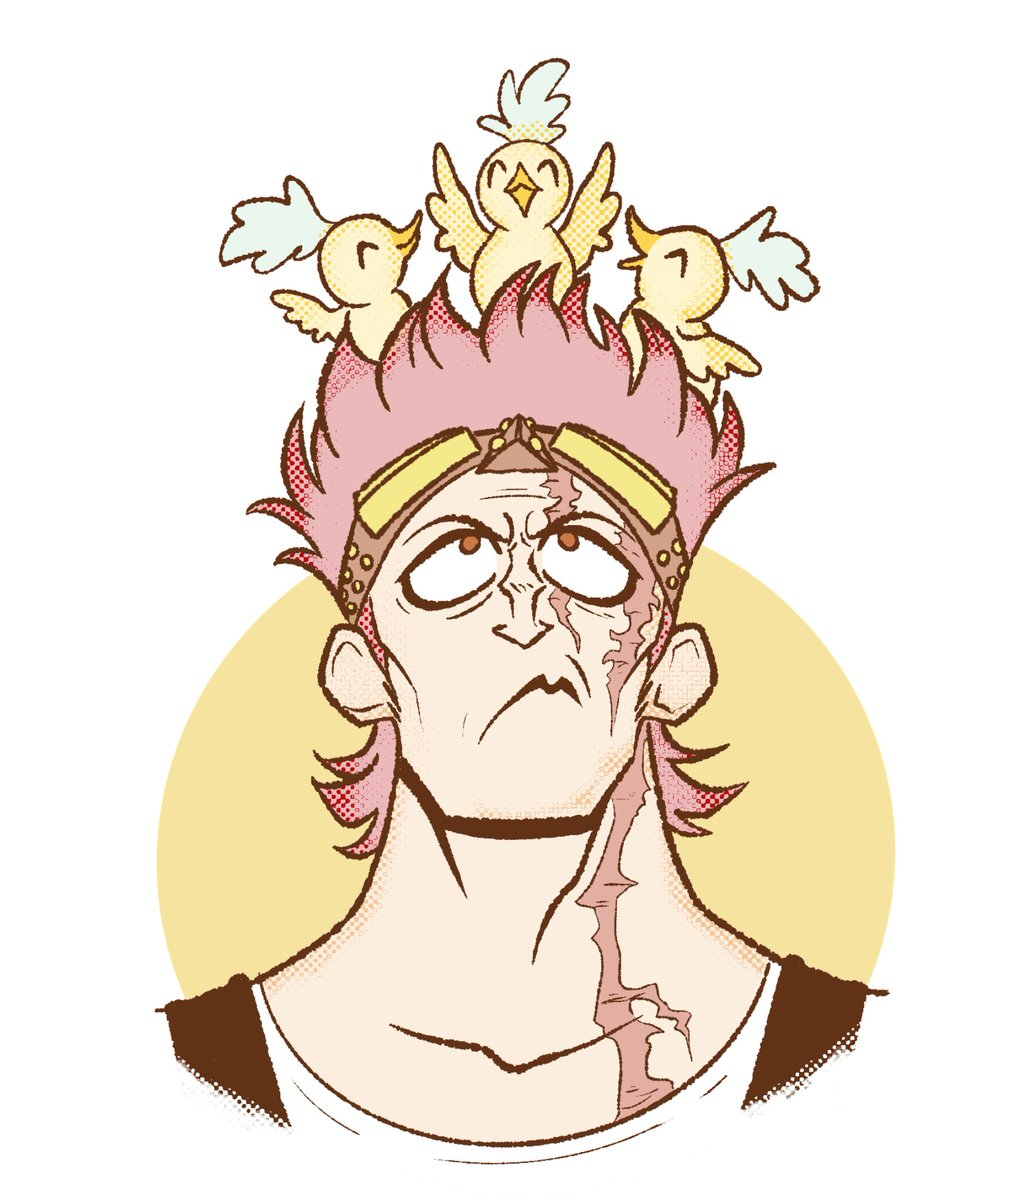 RT @ssoftmoth: Still thinking about that cover 🐥🐥🐥 #onepiece1012 https://t.co/yyxlO5YWt1